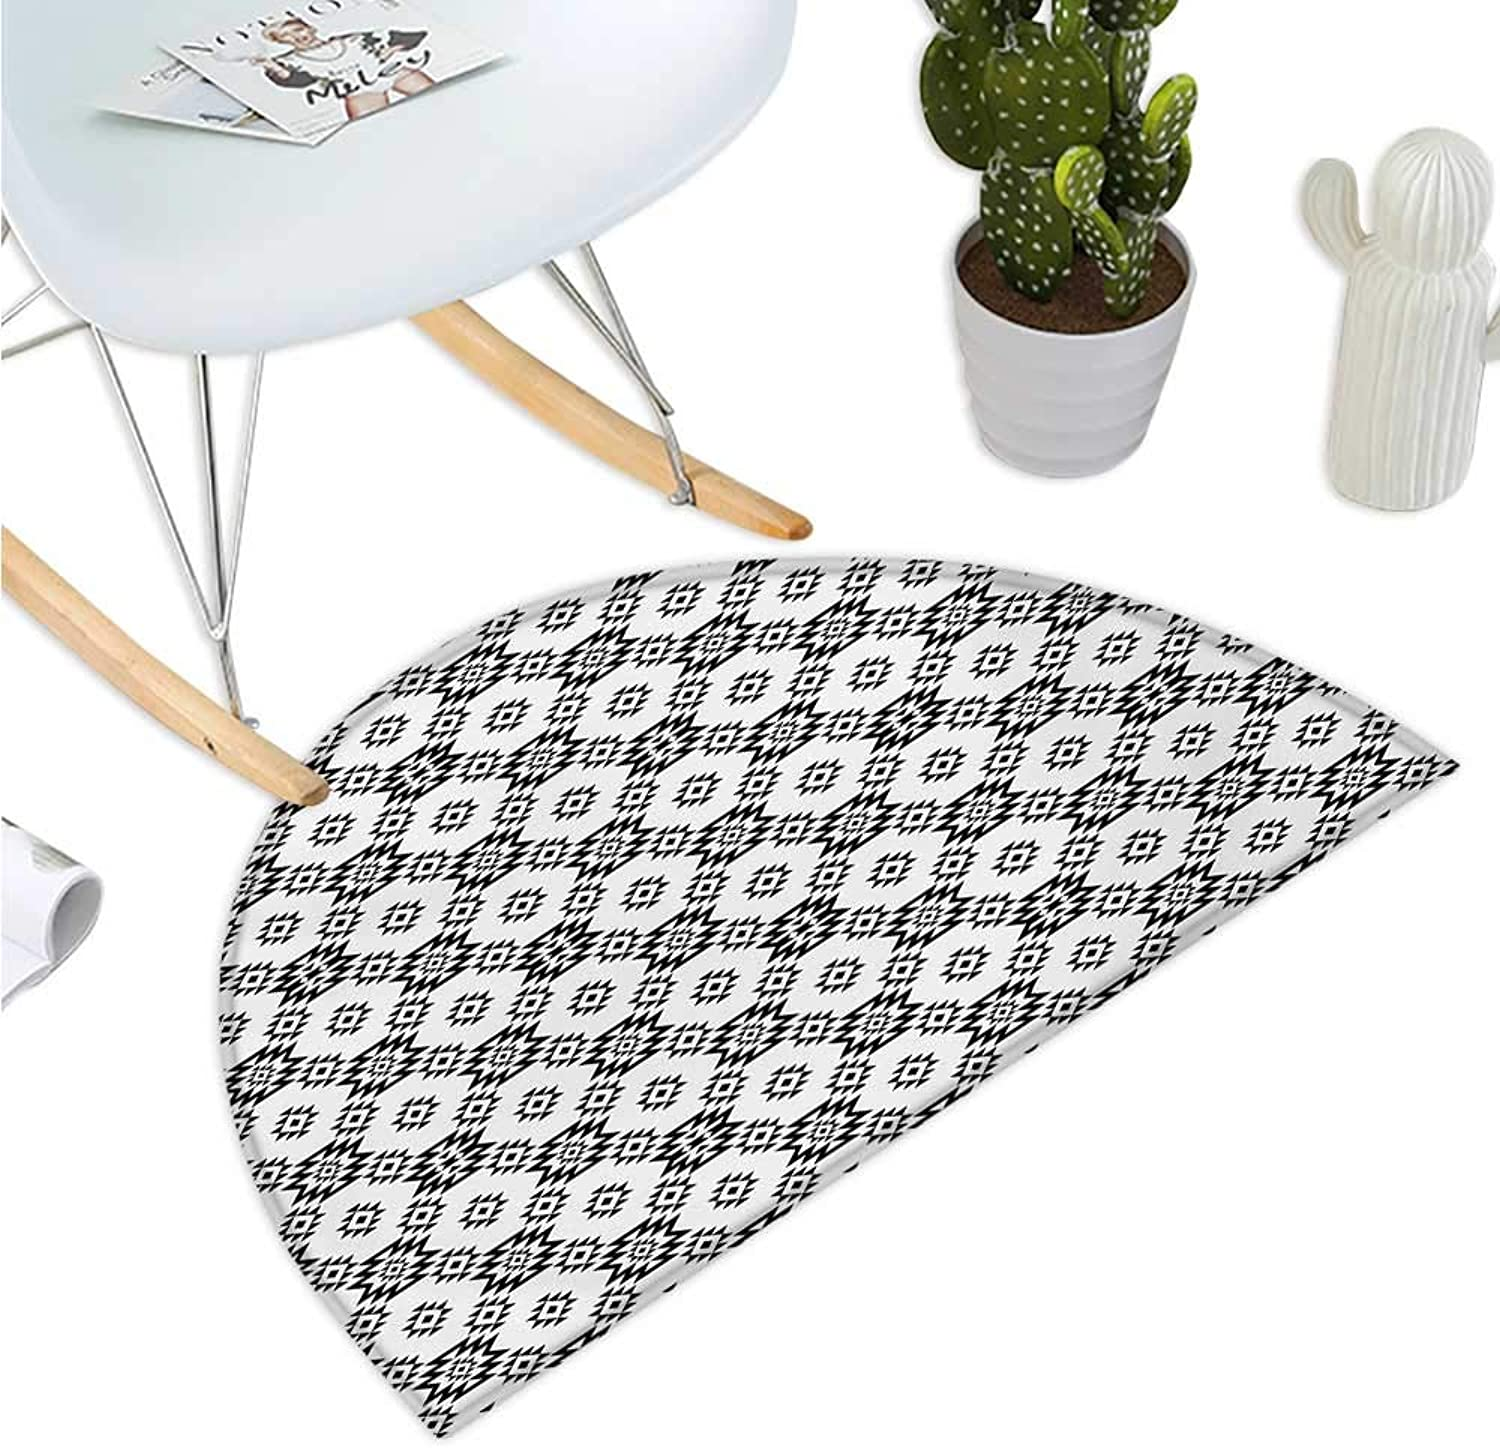 Tribal Half Round Door mats Ethnic Geometric Rhombuses and Triangles Native American Composition Entry Door Mat H 43.3  xD 64.9  Charcoal Grey and White